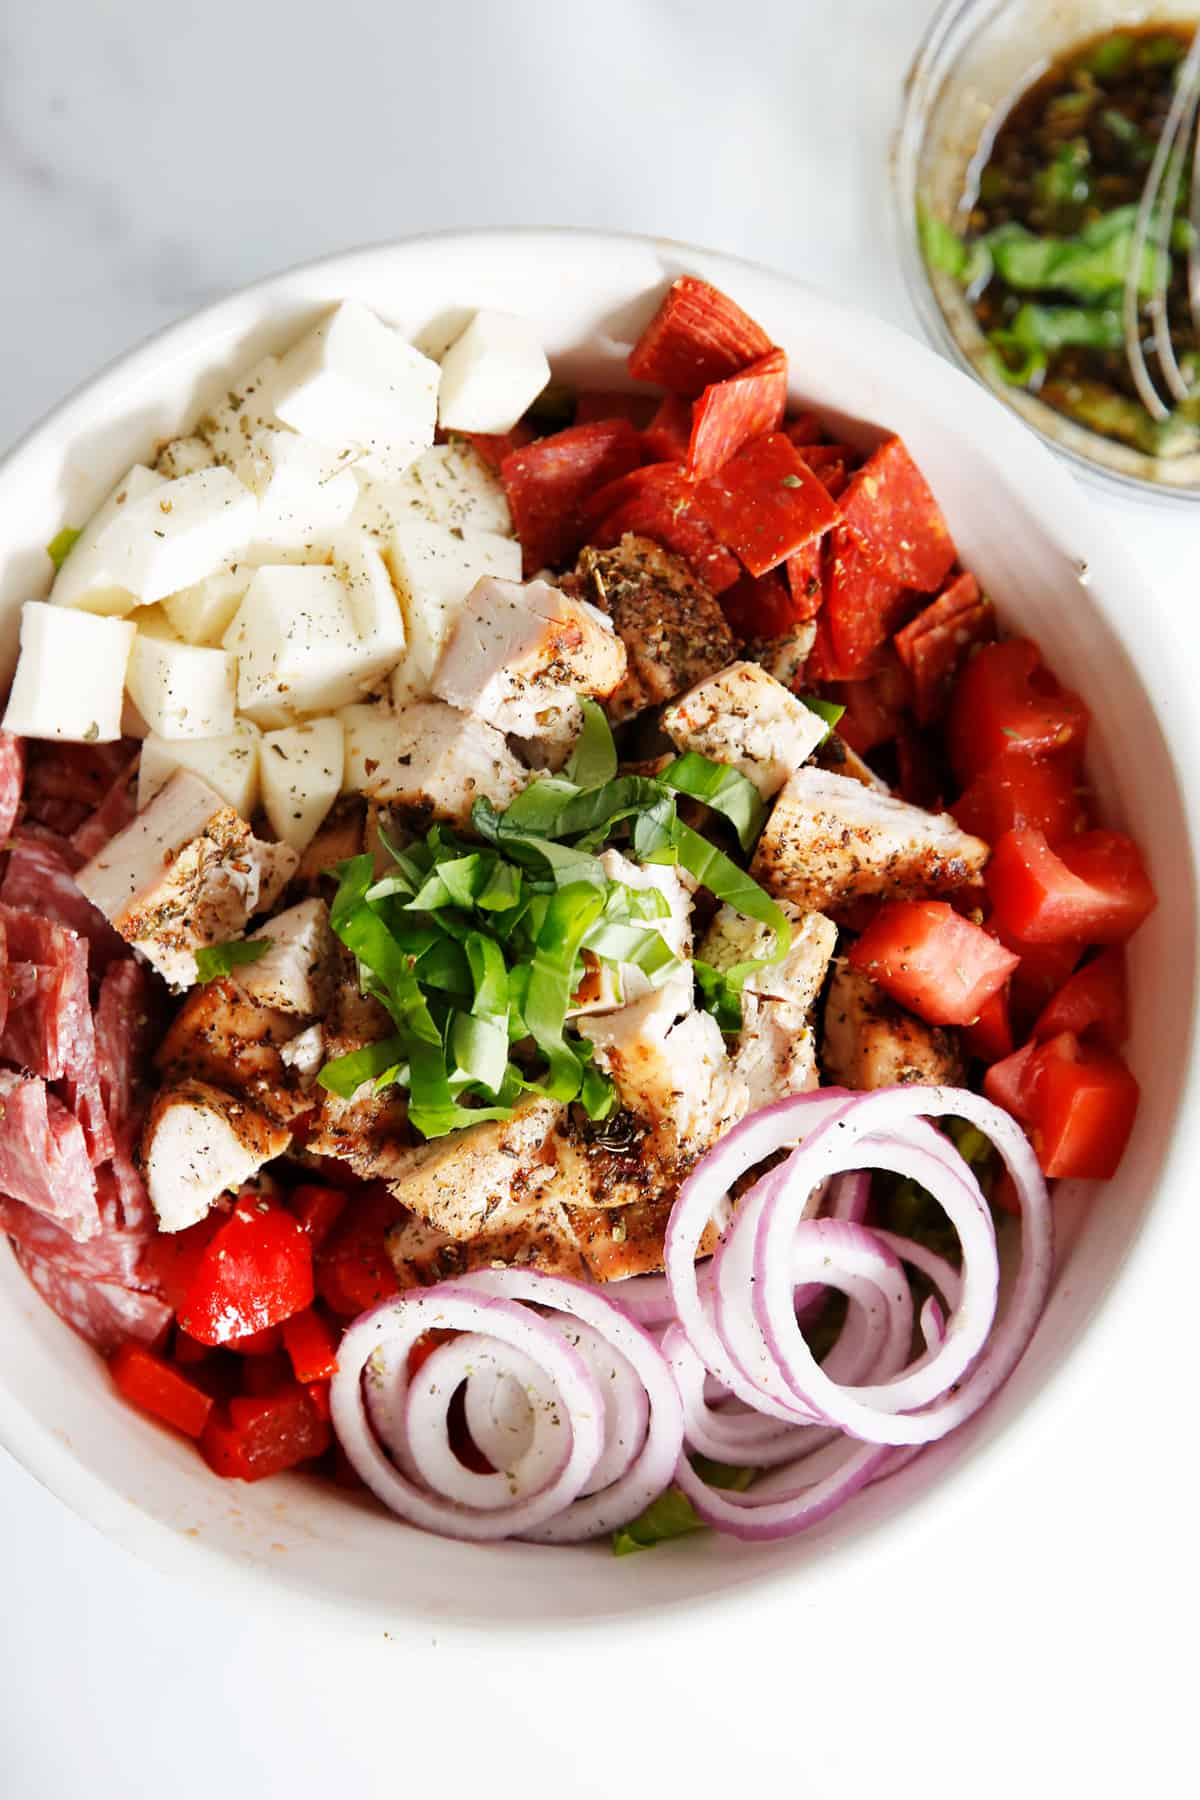 what is antipasto salad with pepperoni, salami, onions and chicken